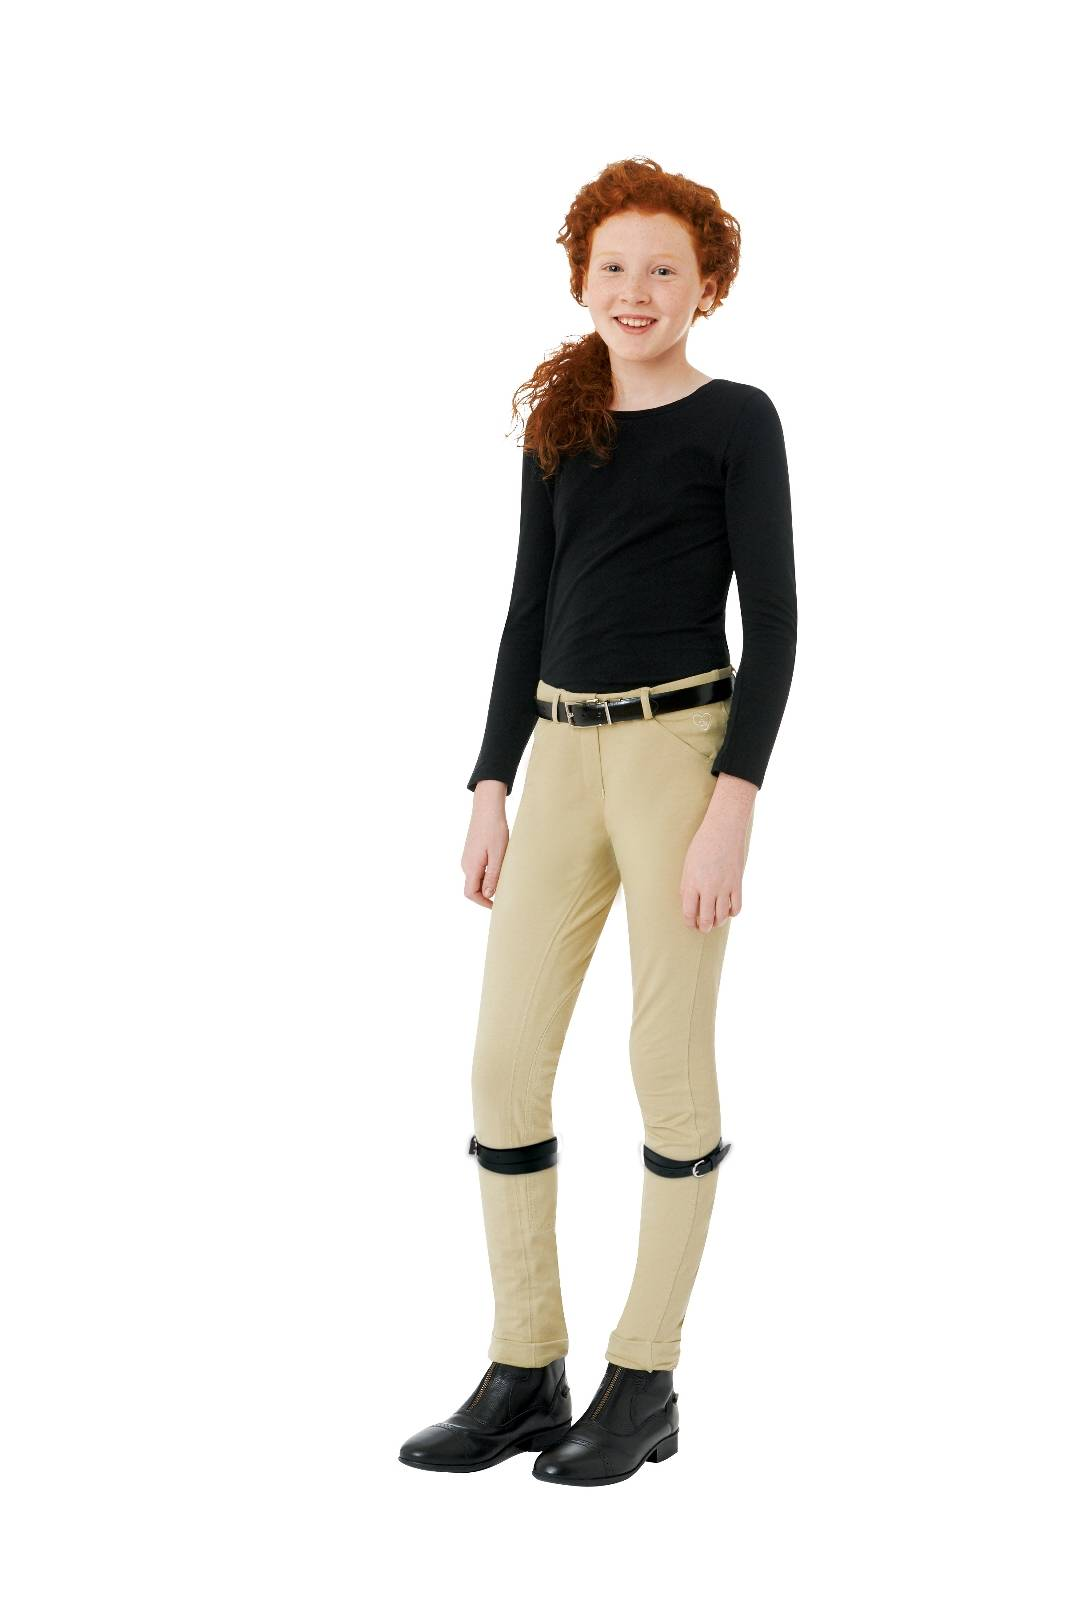 Ovation Lauren Pull On Jods - Kids, EuroSeat